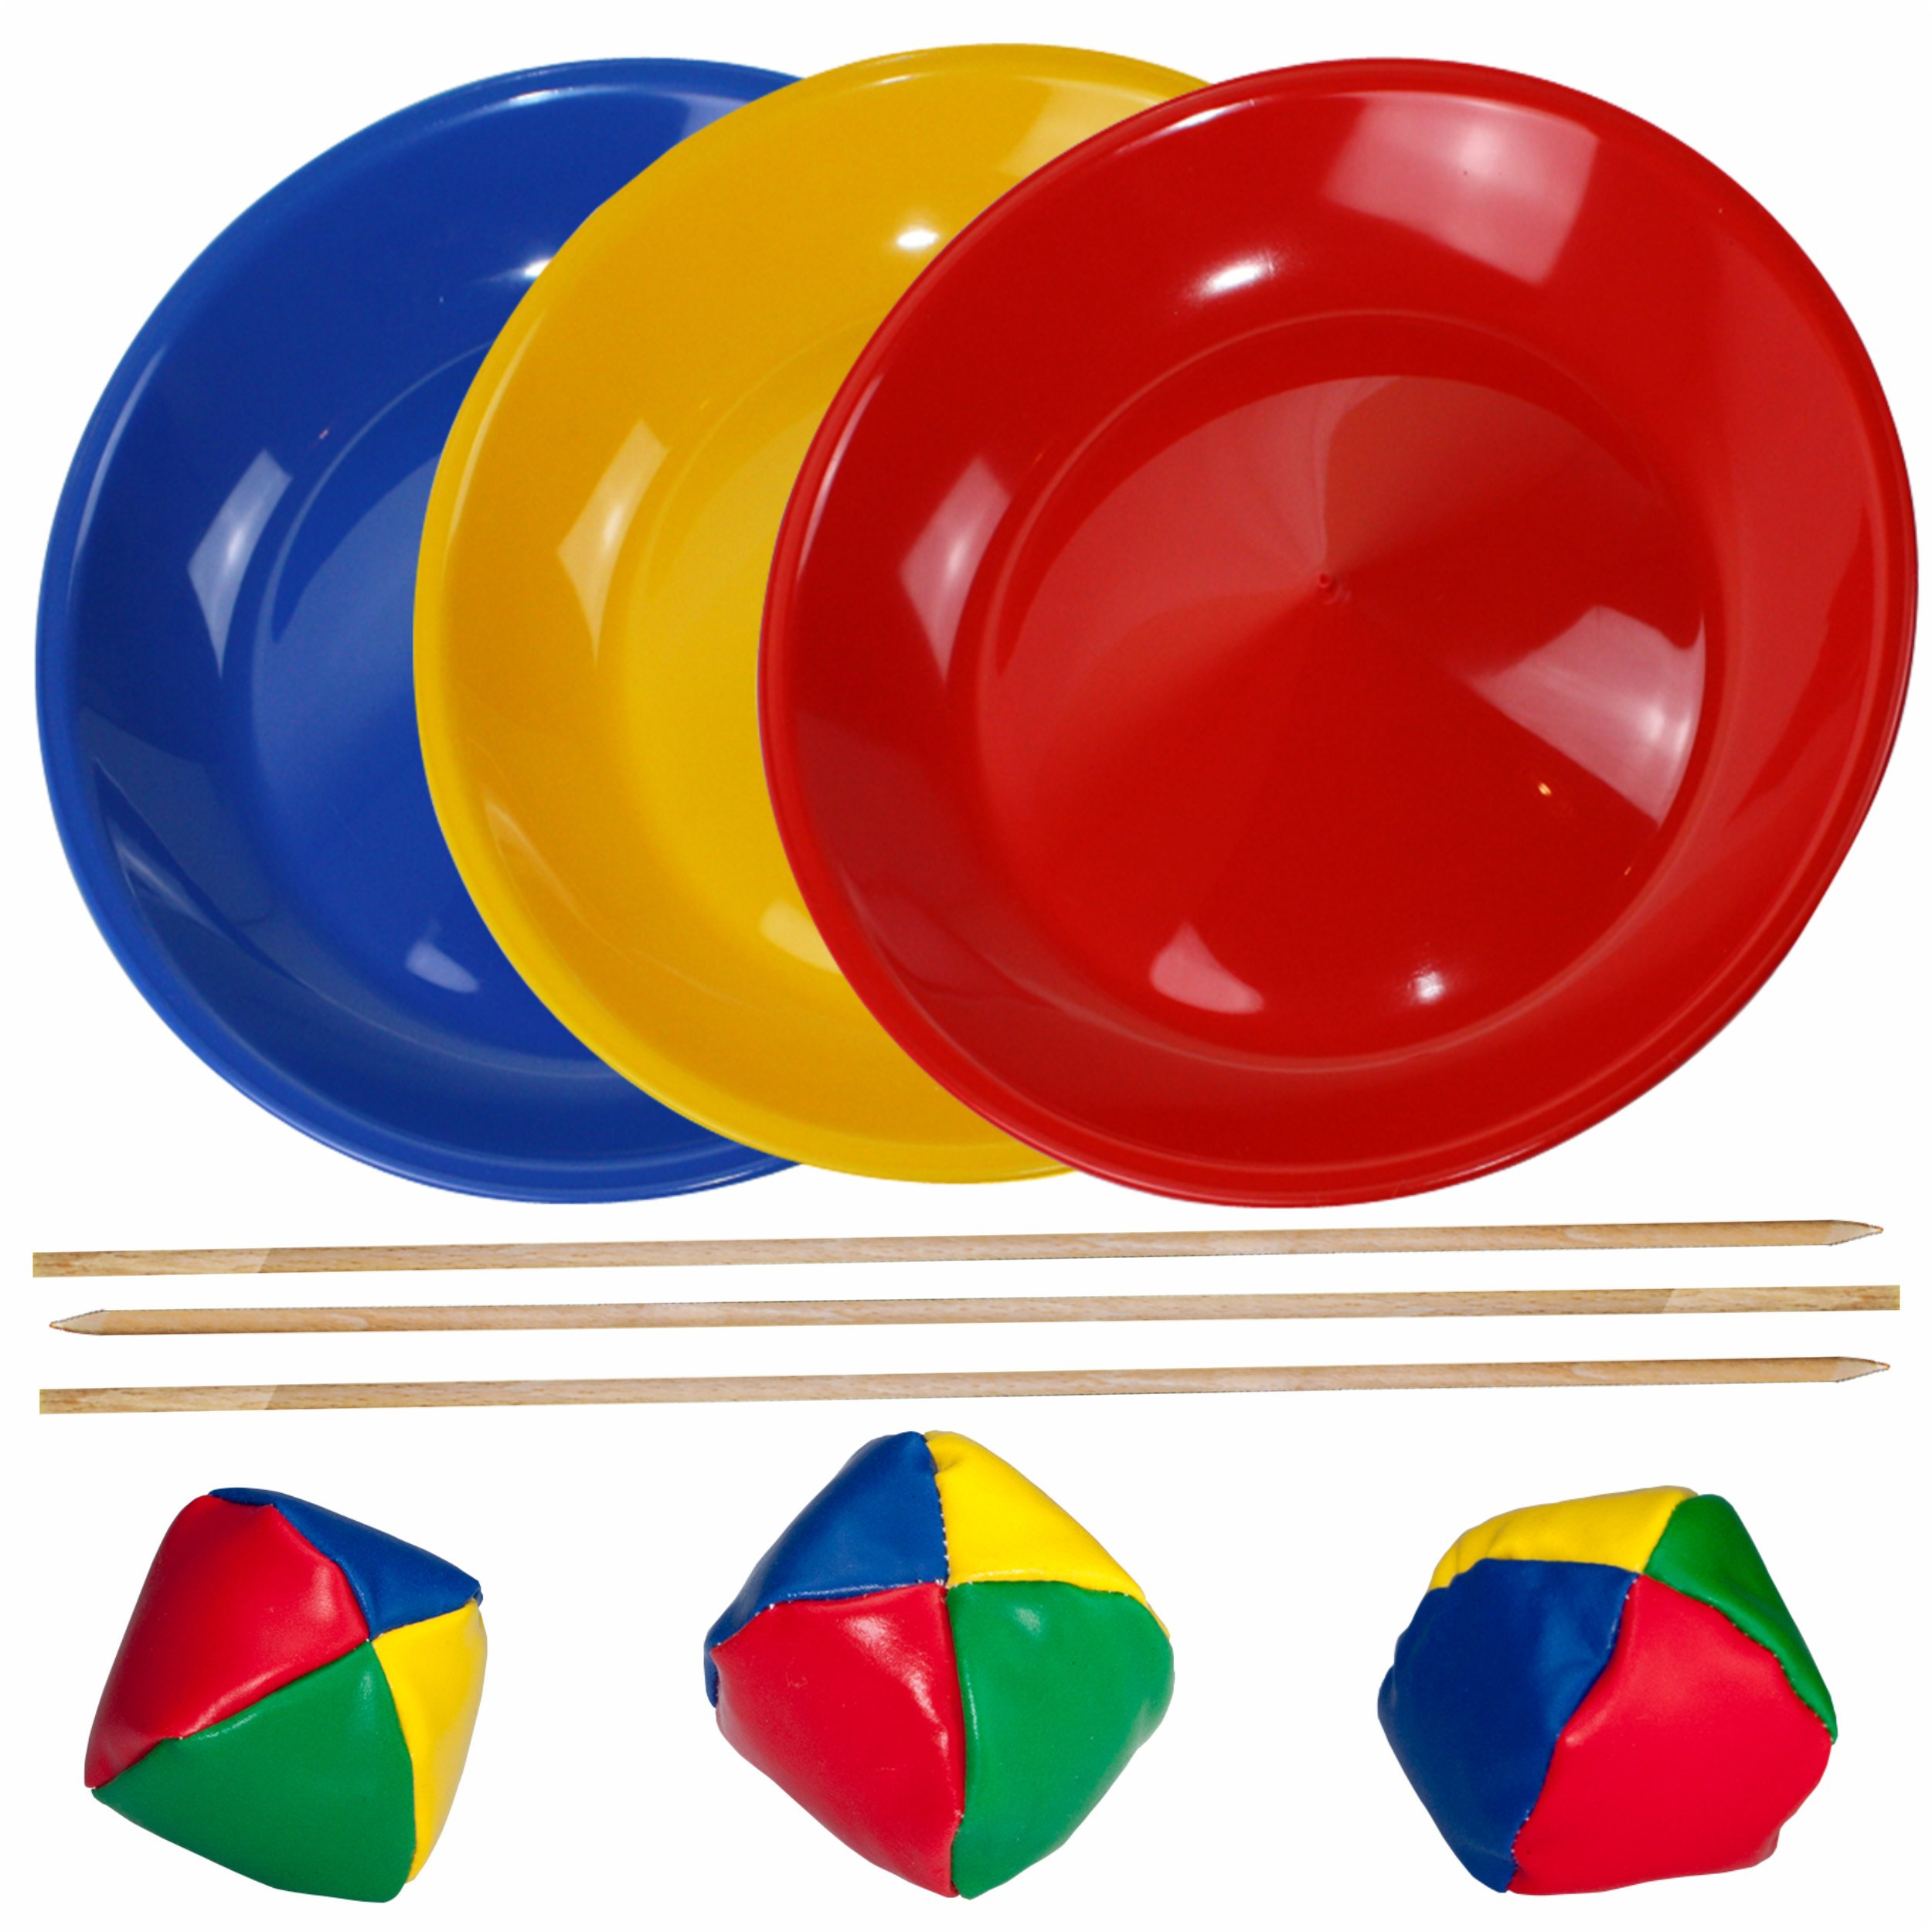 SchwabMarken Juggling Set, 3 Spinning / Juggling Plates with 3 Wooden Sticks and 3 Juggling Balls, Mixed Colours by SchwabMarken